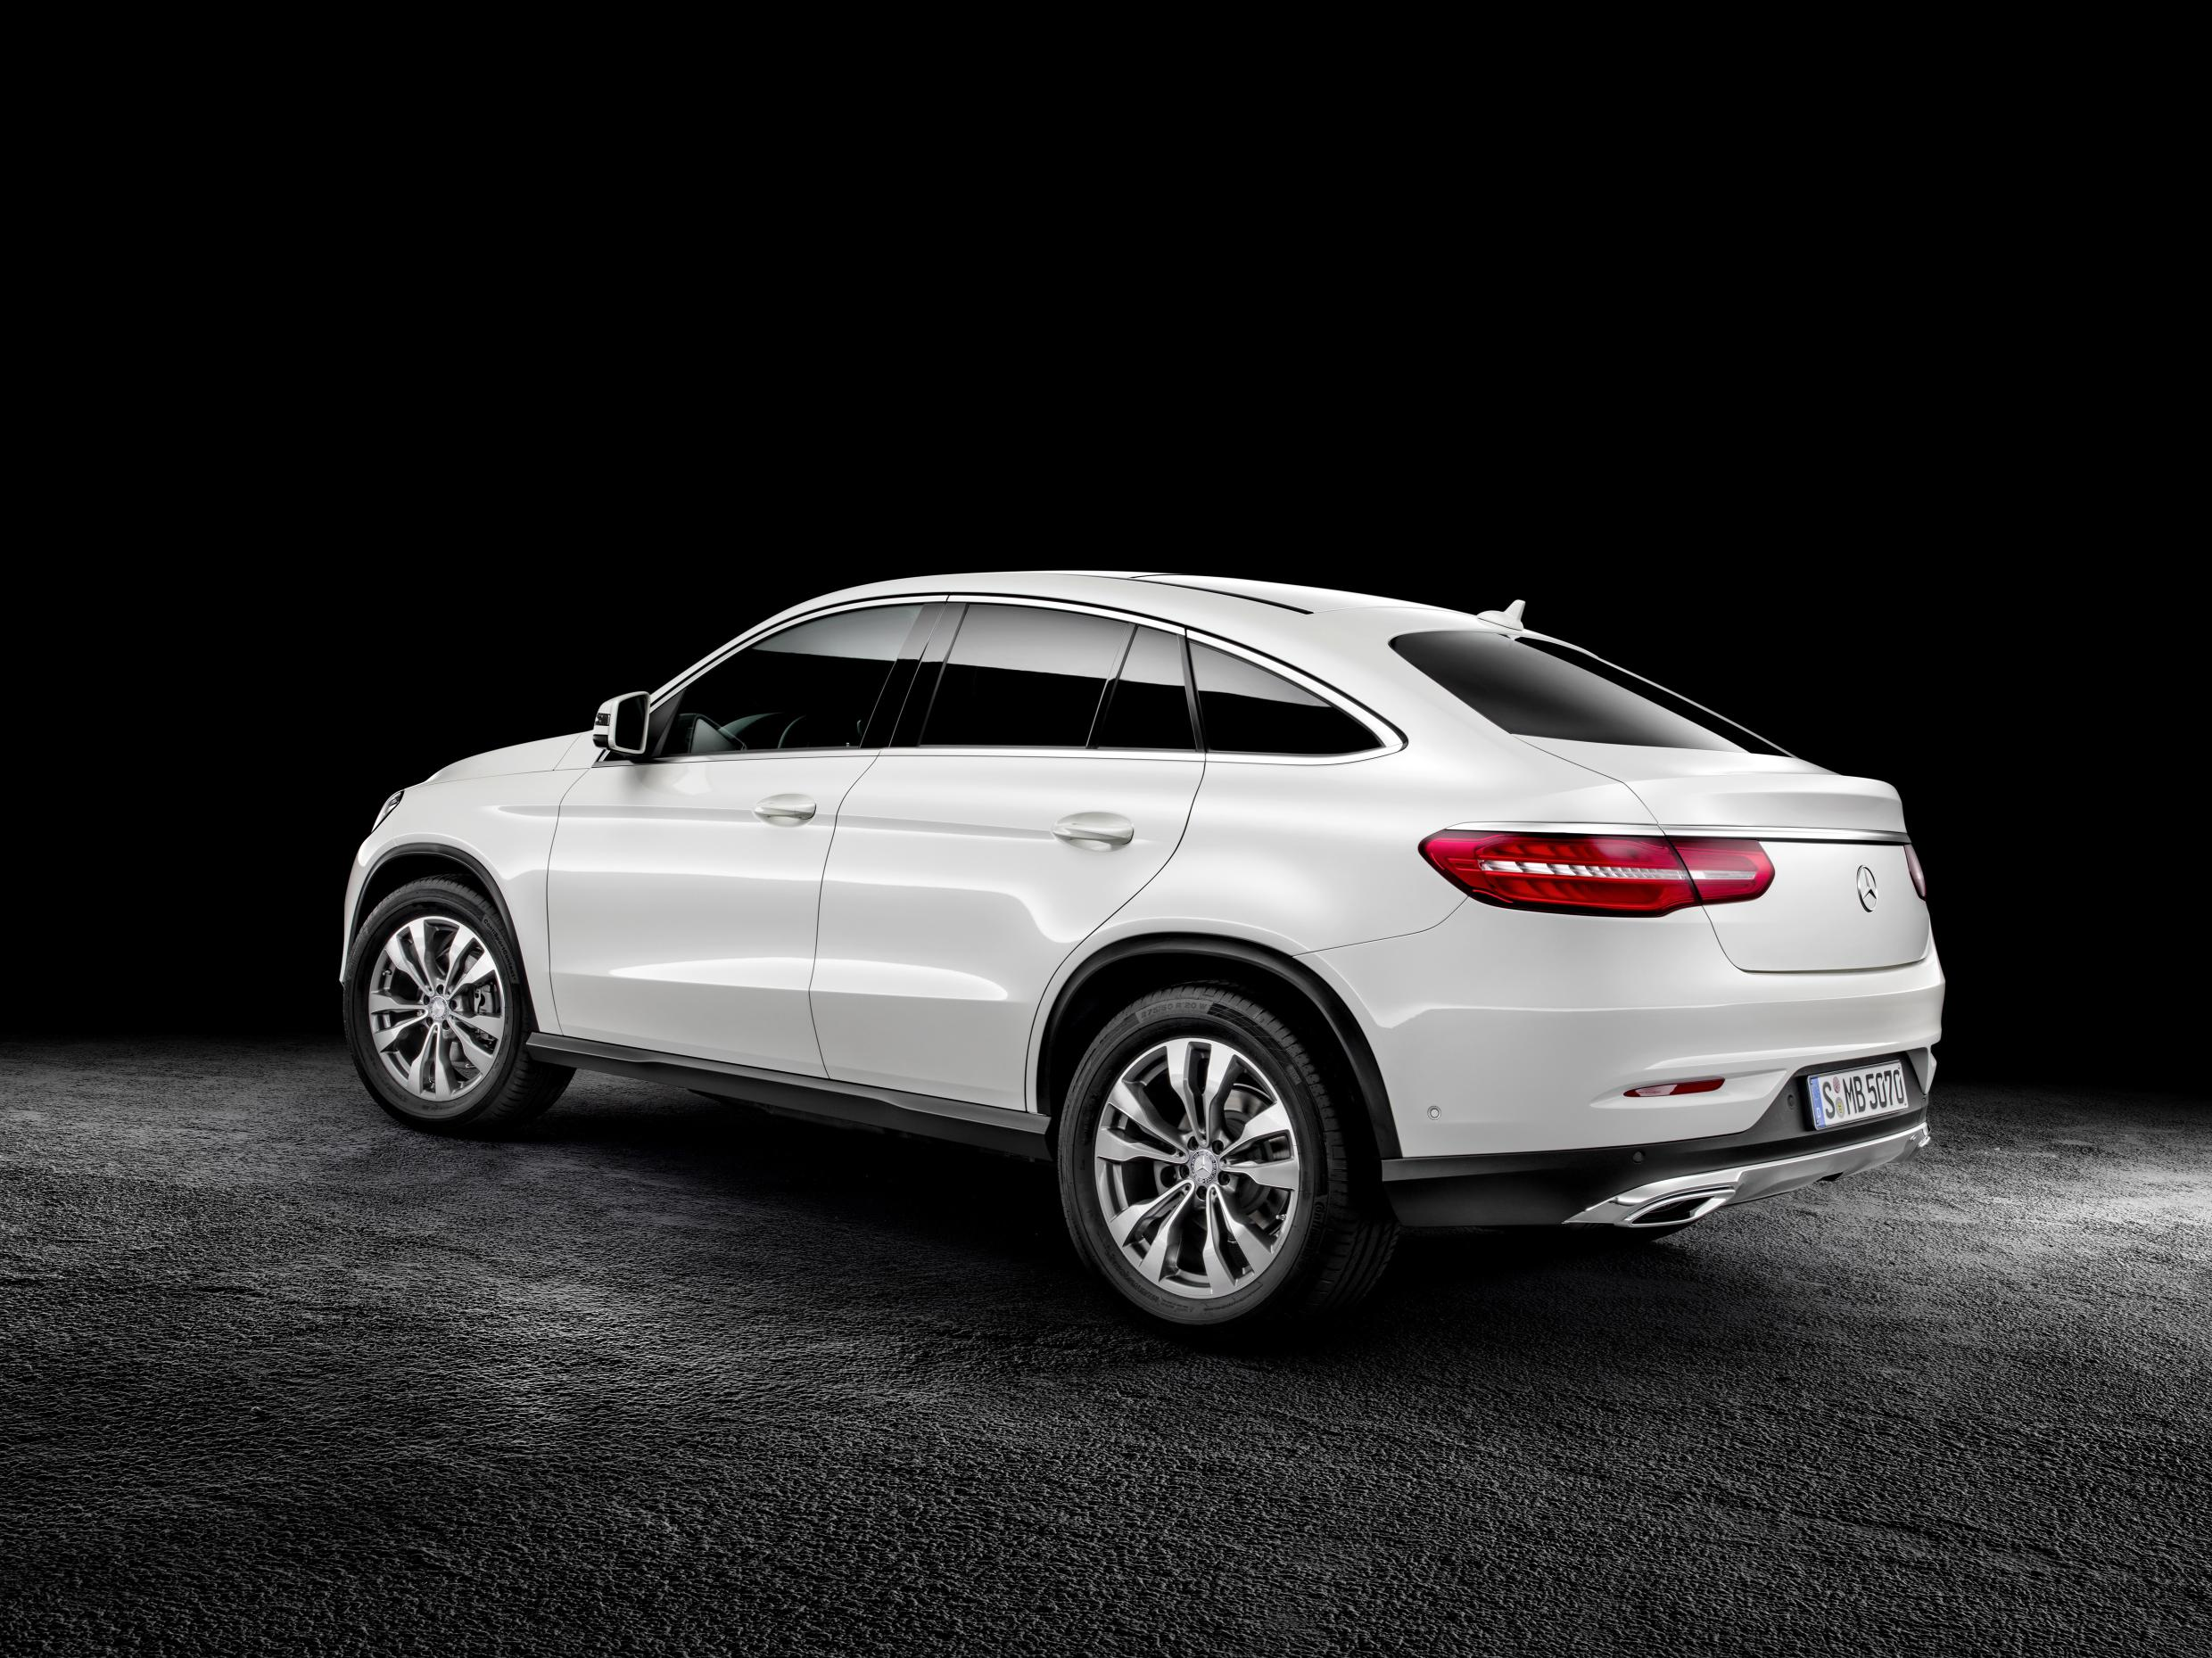 Mercedes benz gle coupe is not the bmw x6 you were looking for Looking for used mercedes benz